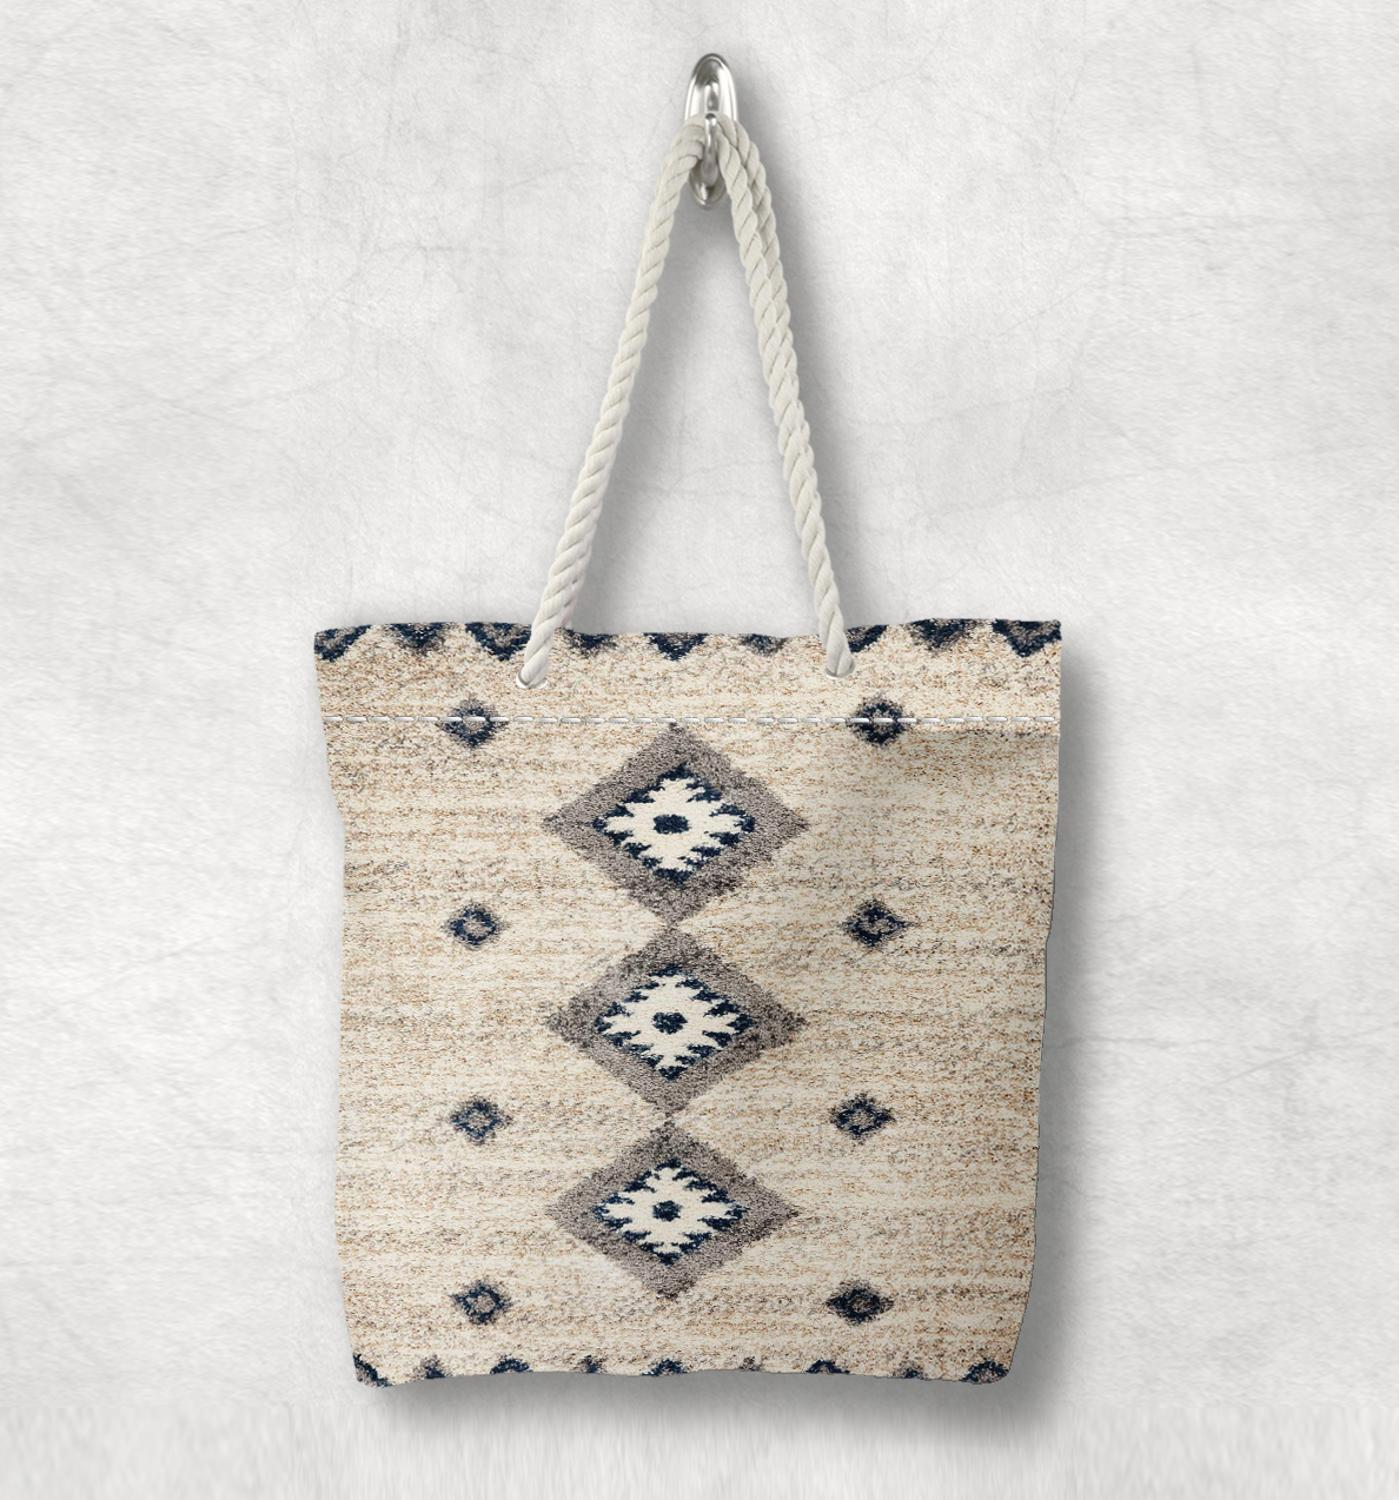 Else Beige Gray Antique Anatolia Turkish Kilim Design White Rope Handle Canvas Bag Cotton Canvas Zippered Tote Bag Shoulder Bag